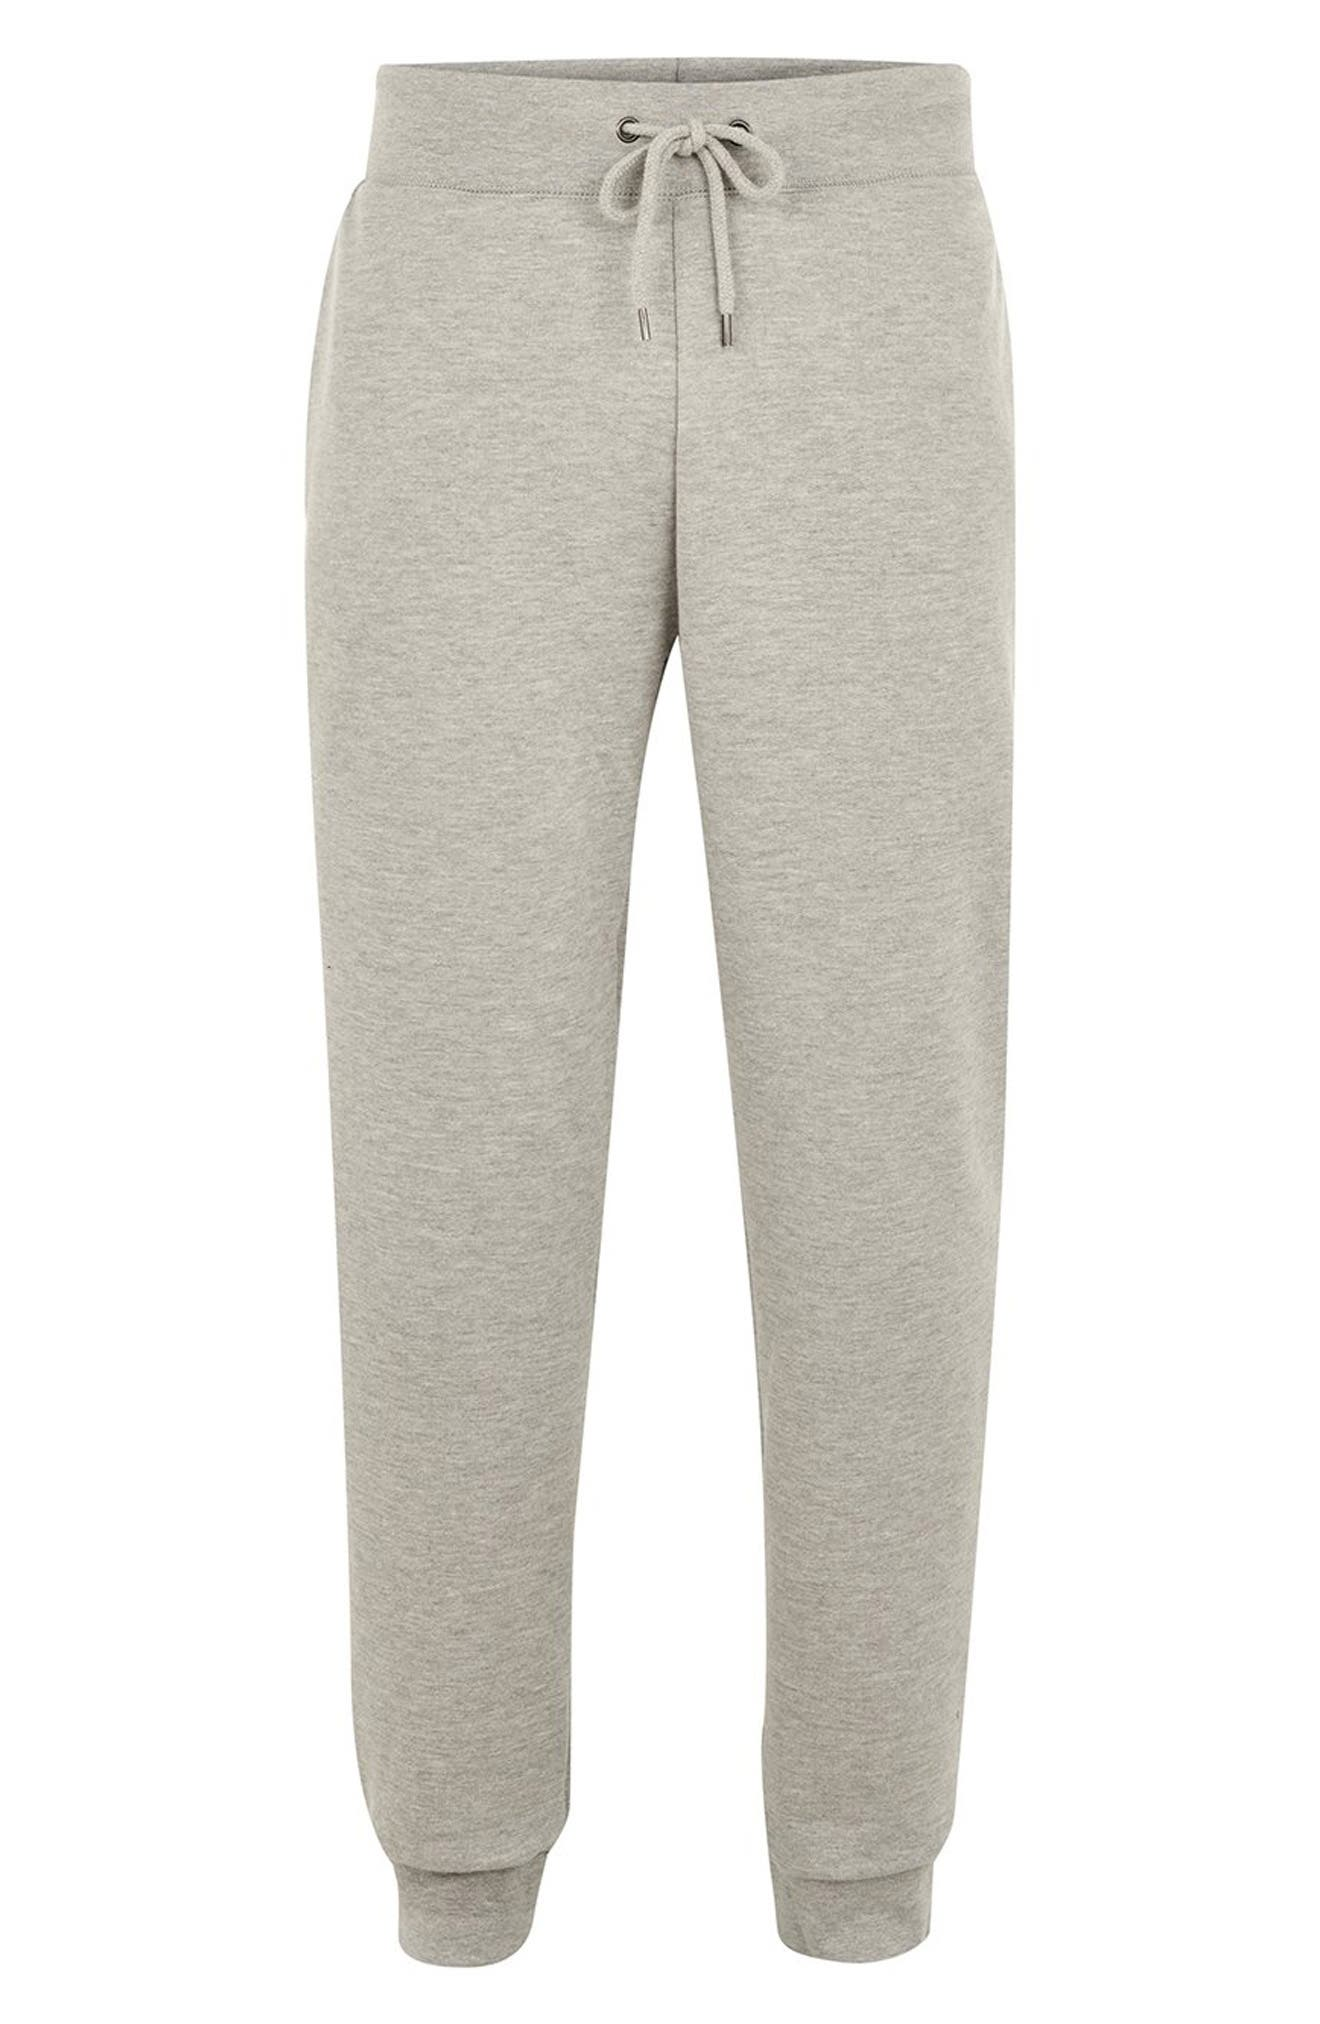 Classic Joggers,                             Alternate thumbnail 4, color,                             GREY